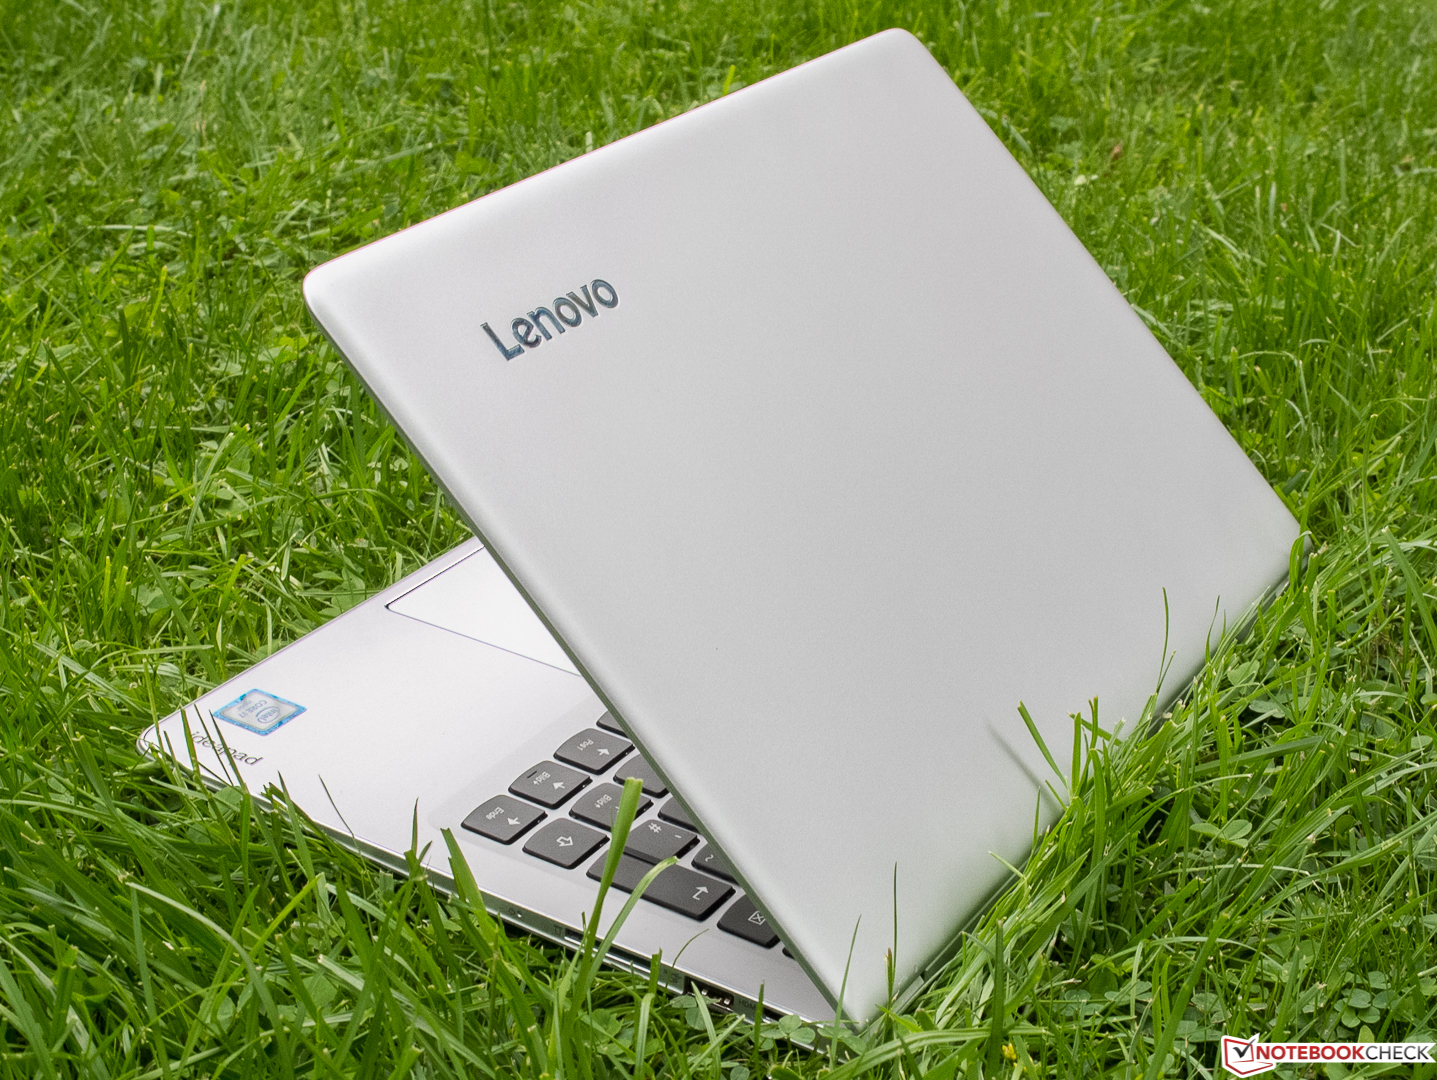 Courte Critique De L Ultraportable Lenovo Ideapad 710s